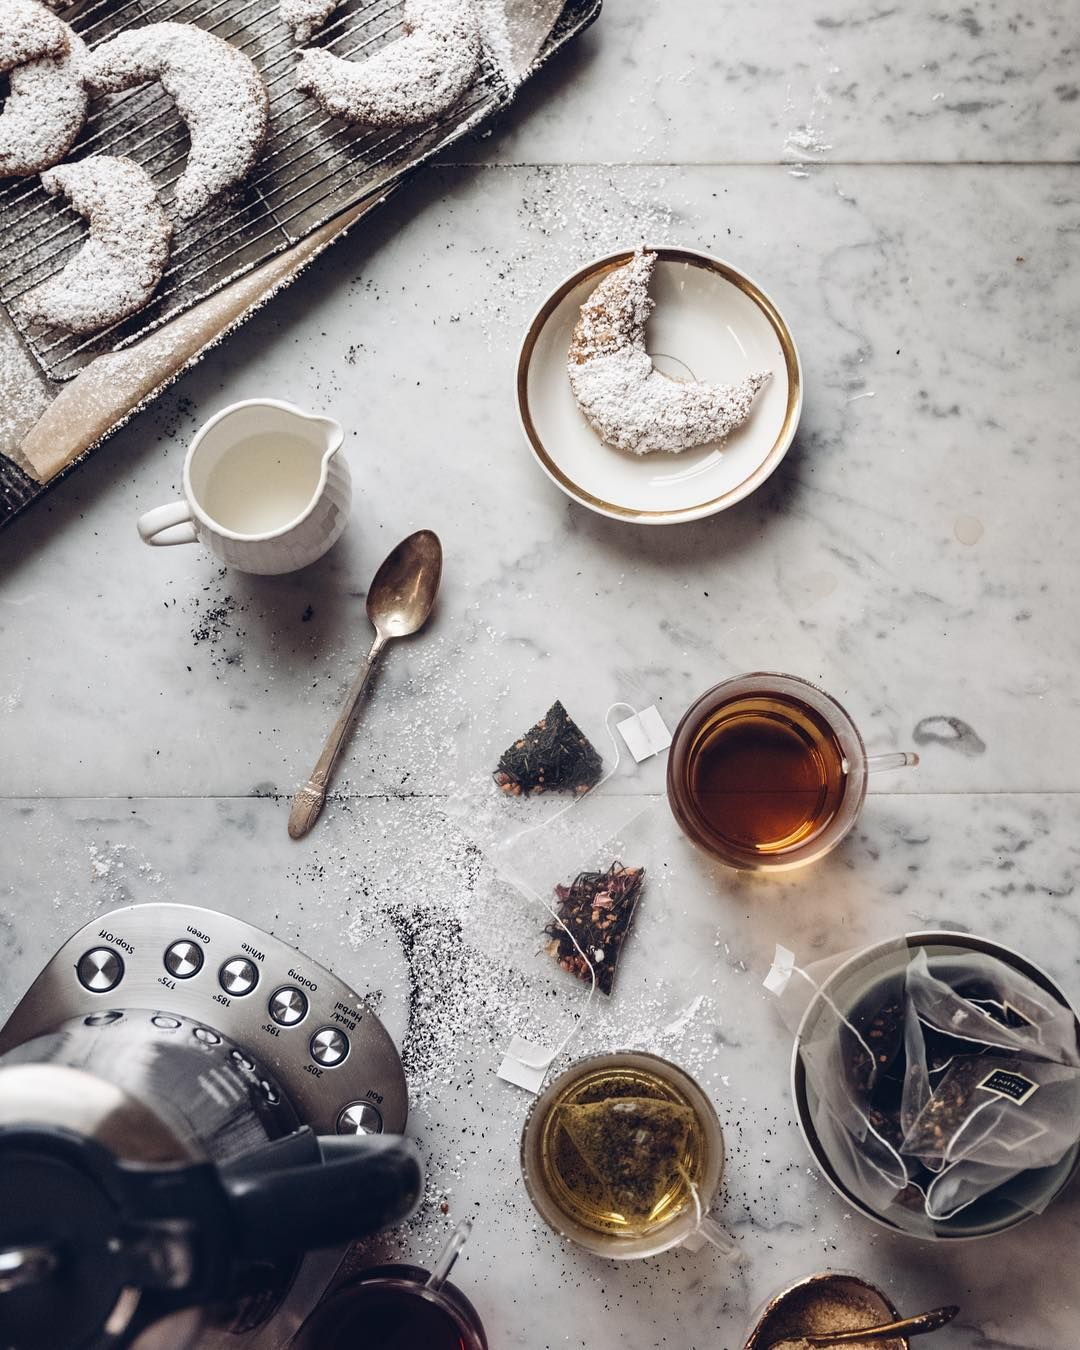 [ #ad ] Coffee & Tea are first cousins...so join me for a Tea focused adventure. Nothing better than a hot cup to sip on for these cold winter days! . During my endless coffee exploration I discovered that @MrCoffee caters to the coffee obsessed AND Tea obsessed.There is no better time than this winter season to try out a few tea recipes with my new Mr. Coffee Hot Tea Maker and Kettle.Please note that I am not cheating on coffee...we have just agreed to date other people ;-)